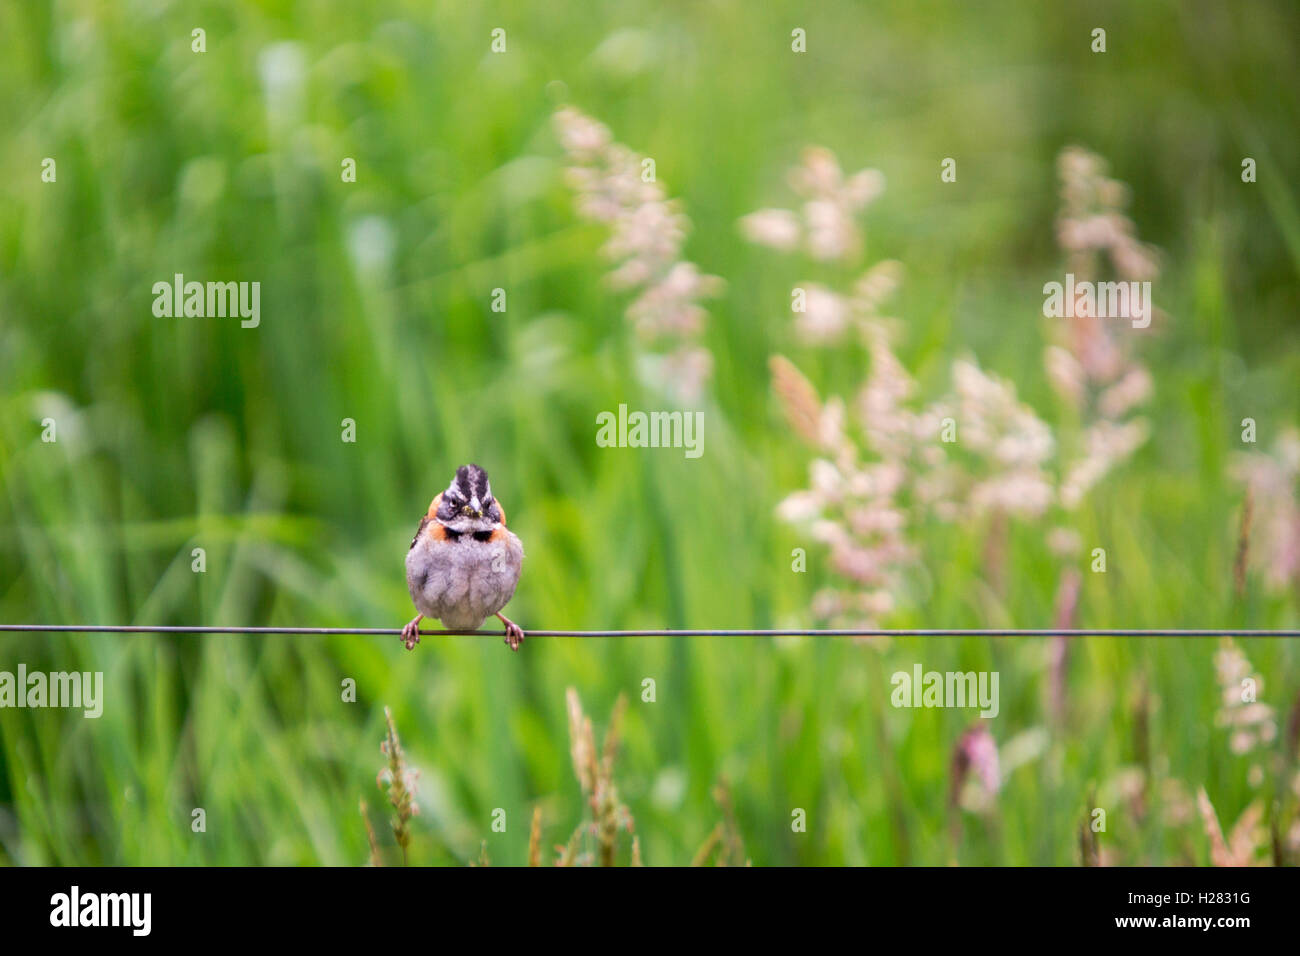 small sparrow on a wire in a field of tall grass looking at me Stock Photo